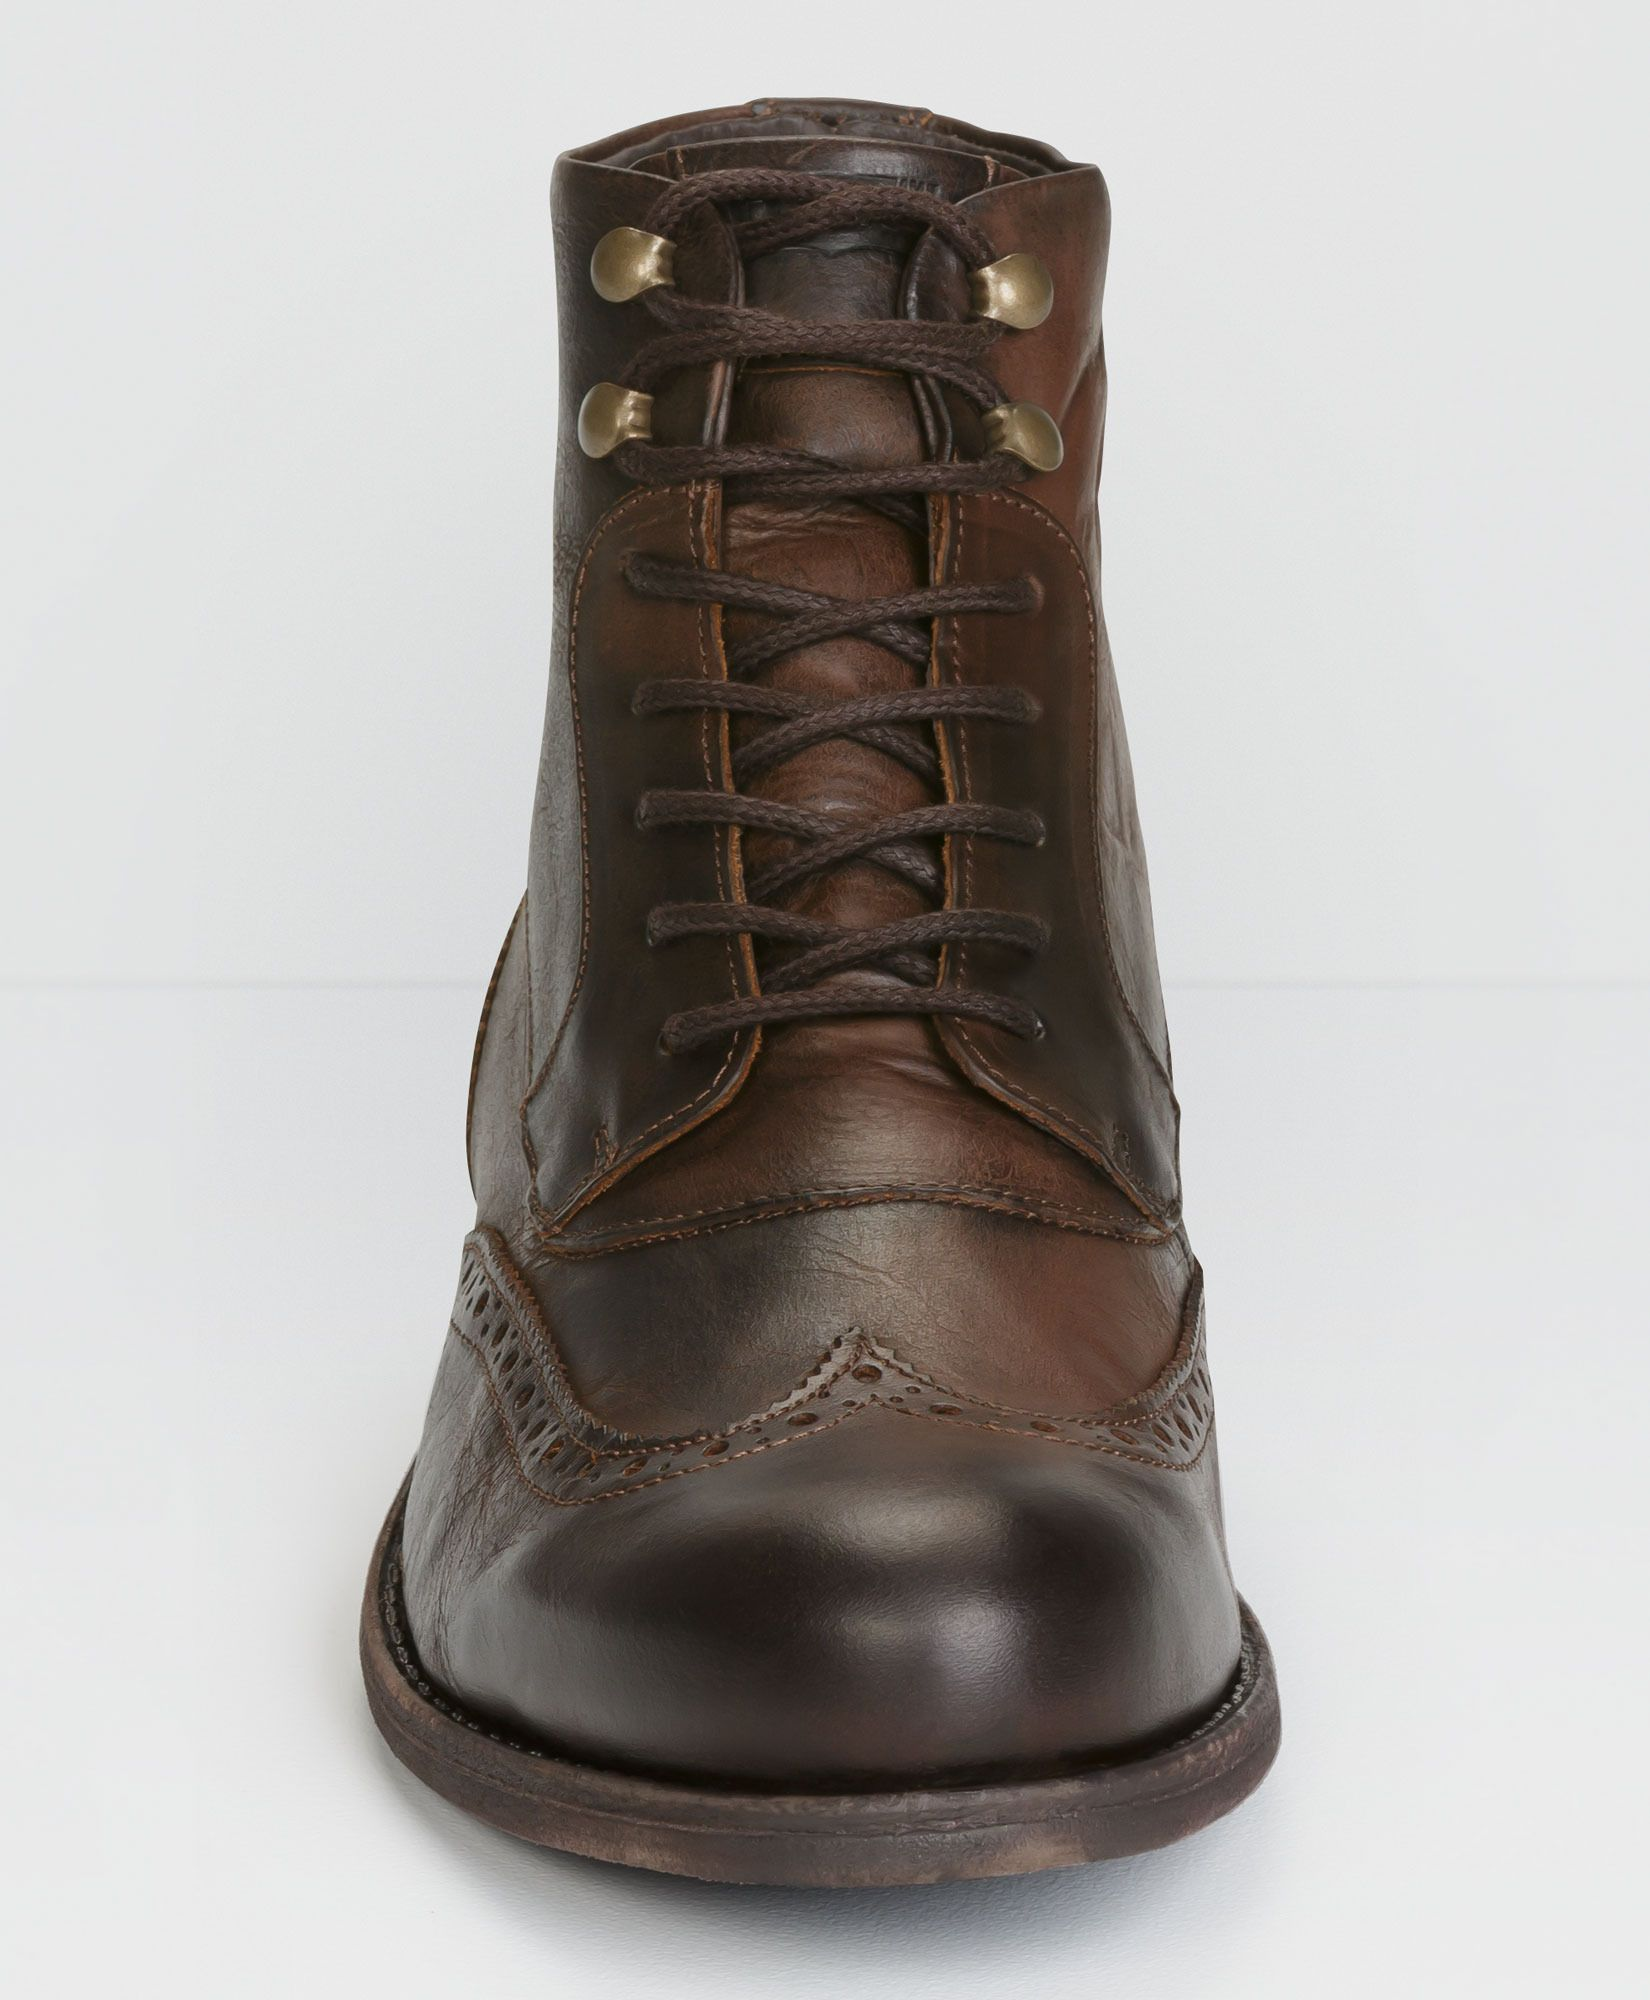 eb56a054b7 Levi's Brogue Lace-Up Boots - Dark Brown - Accessories & Shoes ...